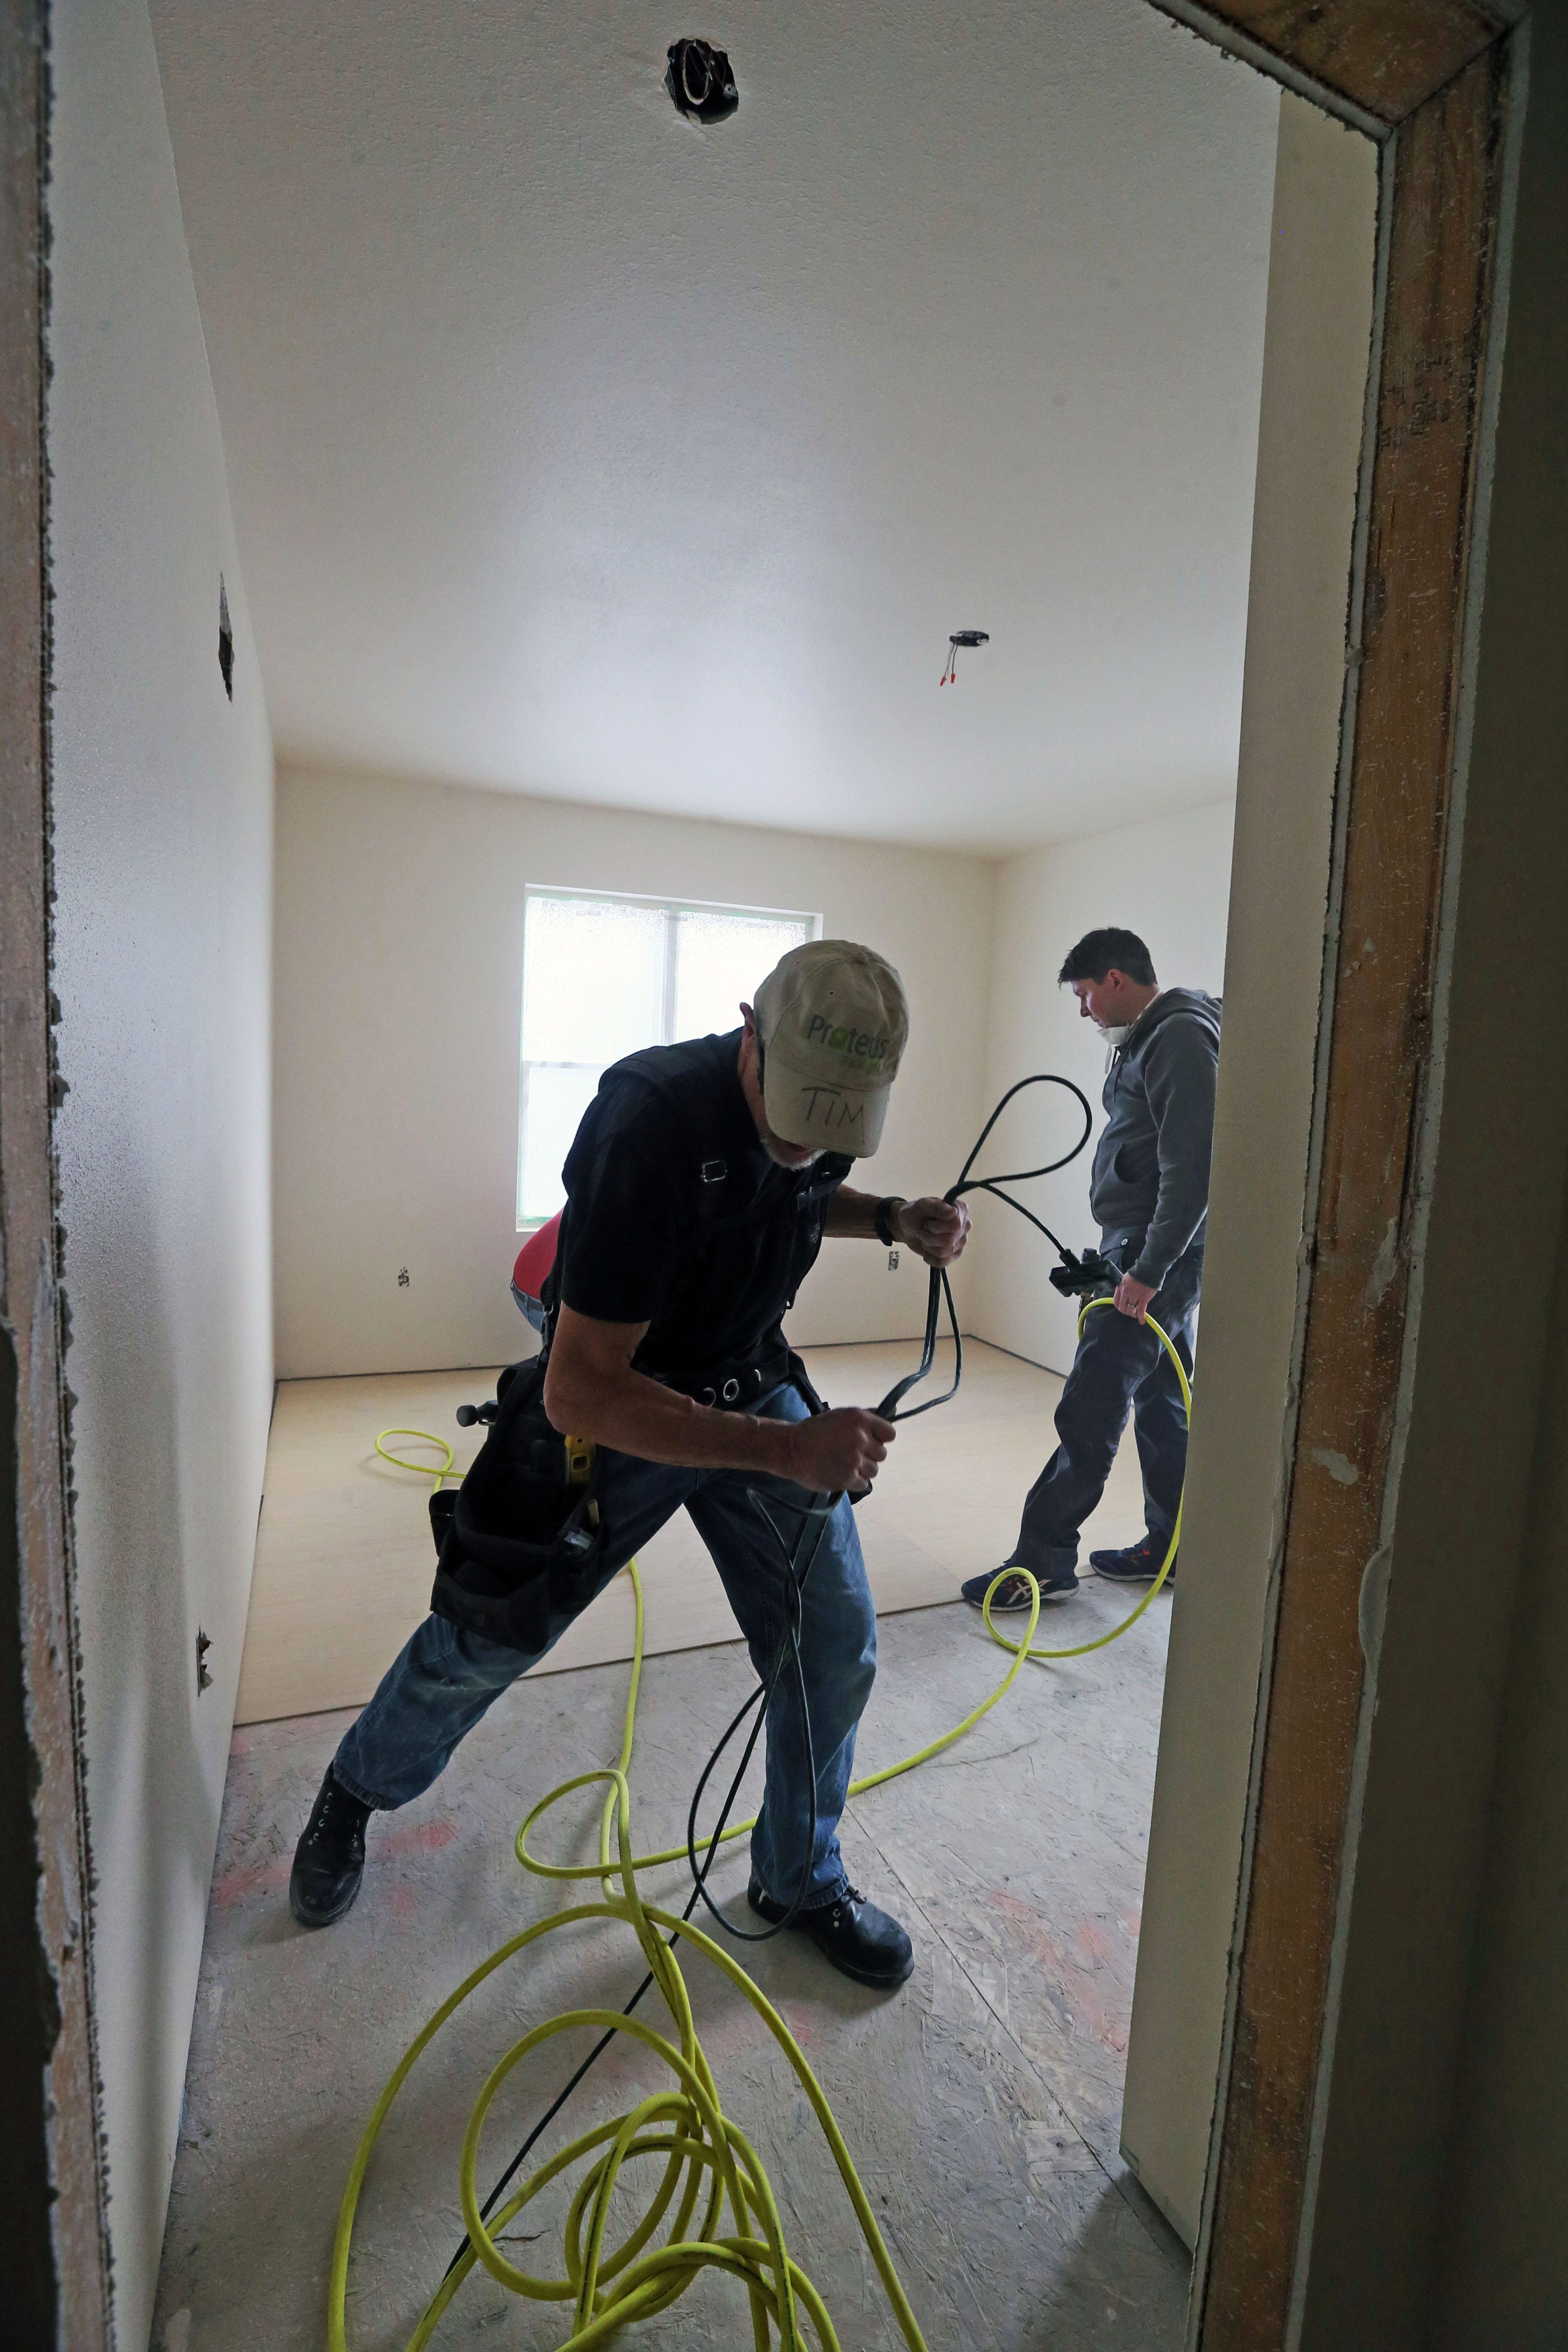 Tim Wayman, foreground, and Dave Larson do flooring work on a Habitat for Humanity home at 2223 N. 28th St., Milwaukee, on Jan. 20.